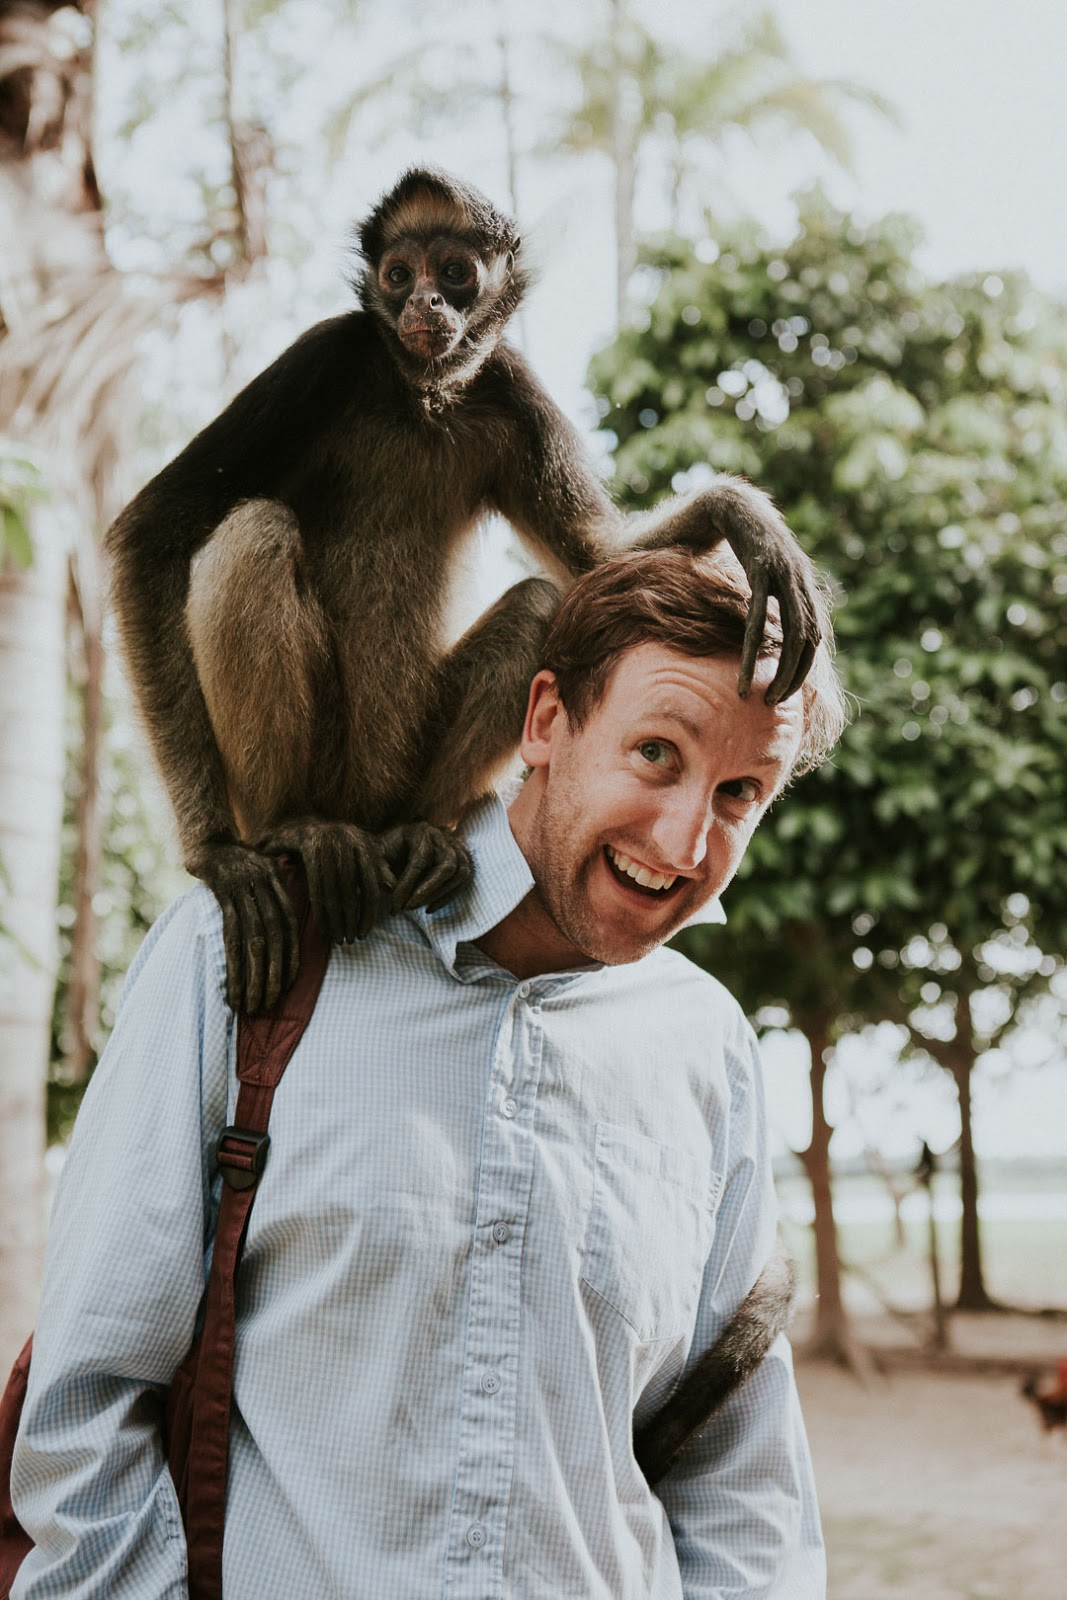 Chris Reed and monkey in the Amazonian jungle